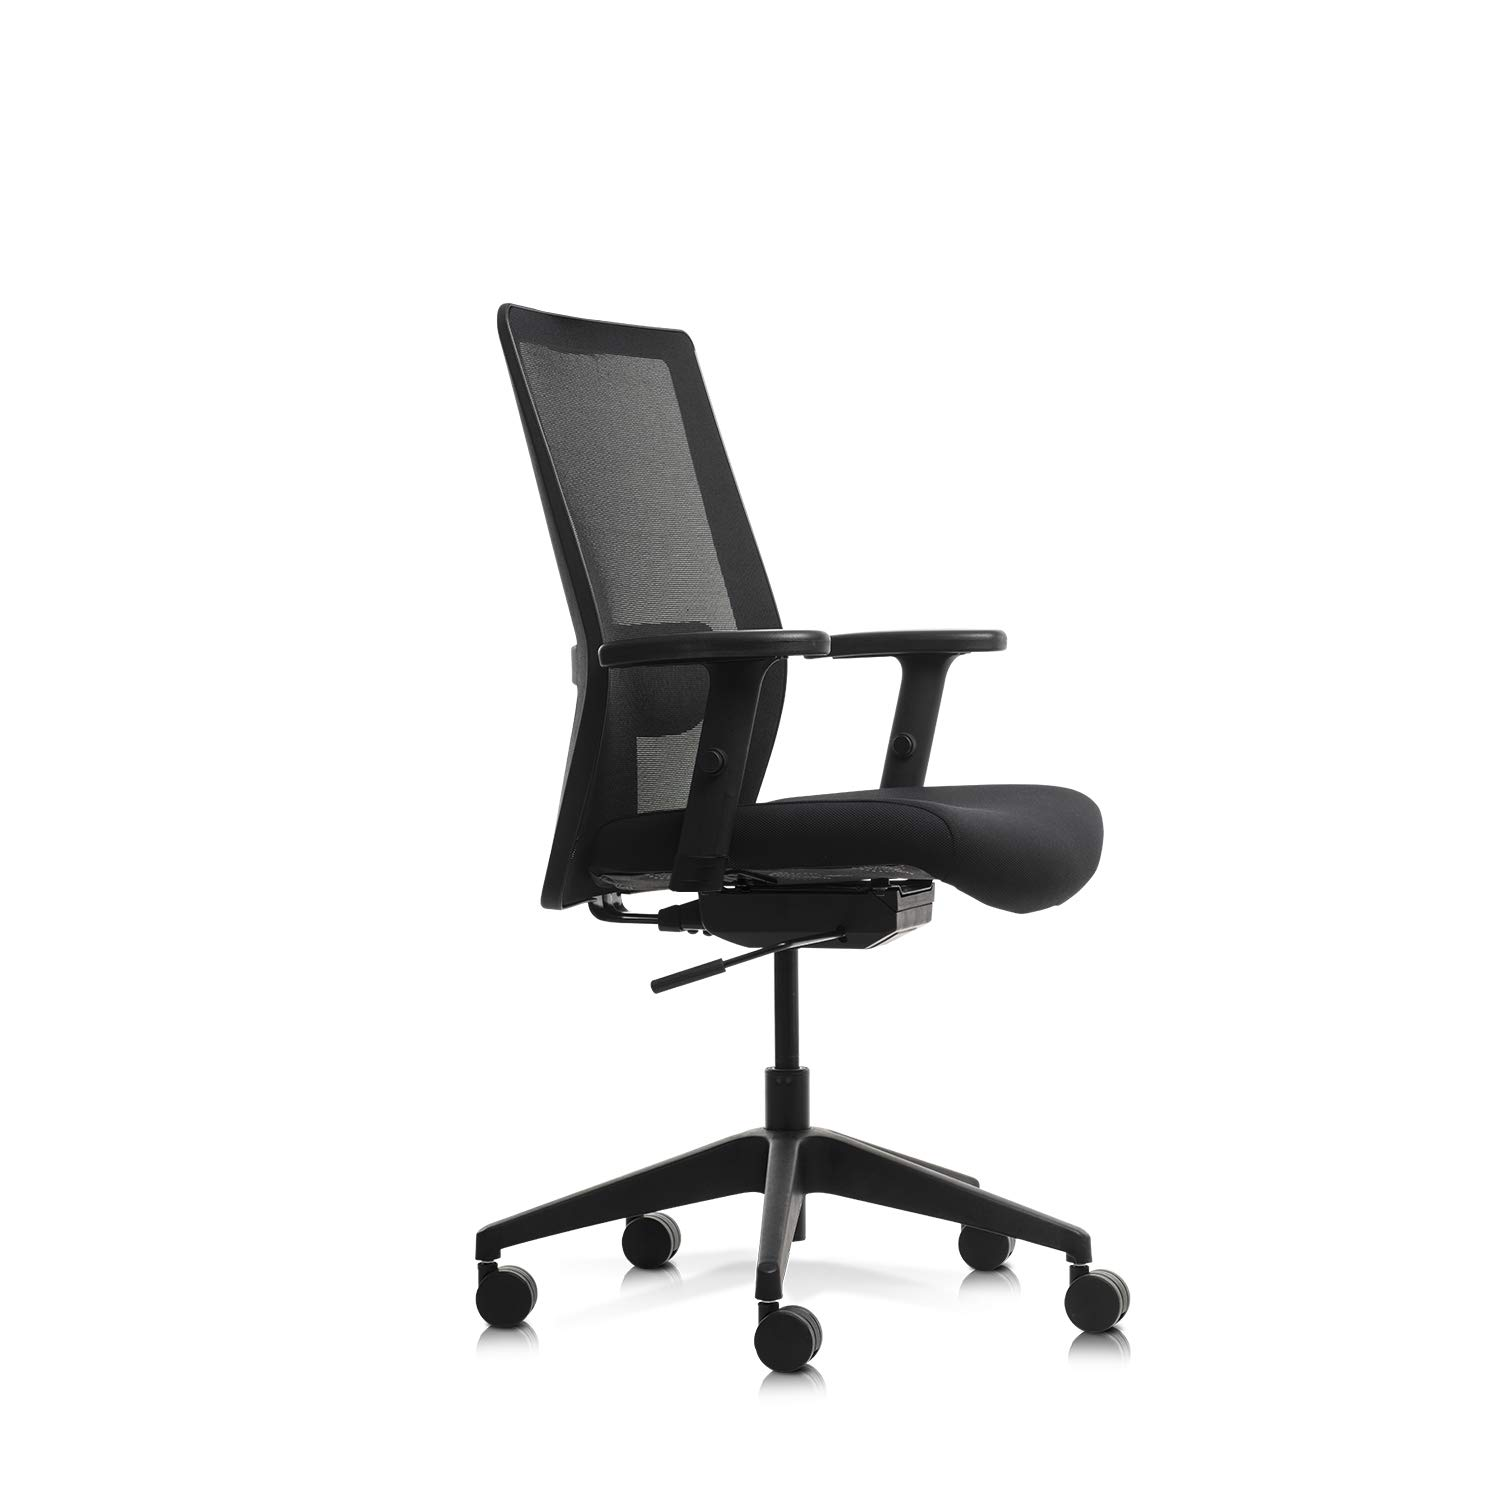 Wipro Medium Back Executive Office Chair review